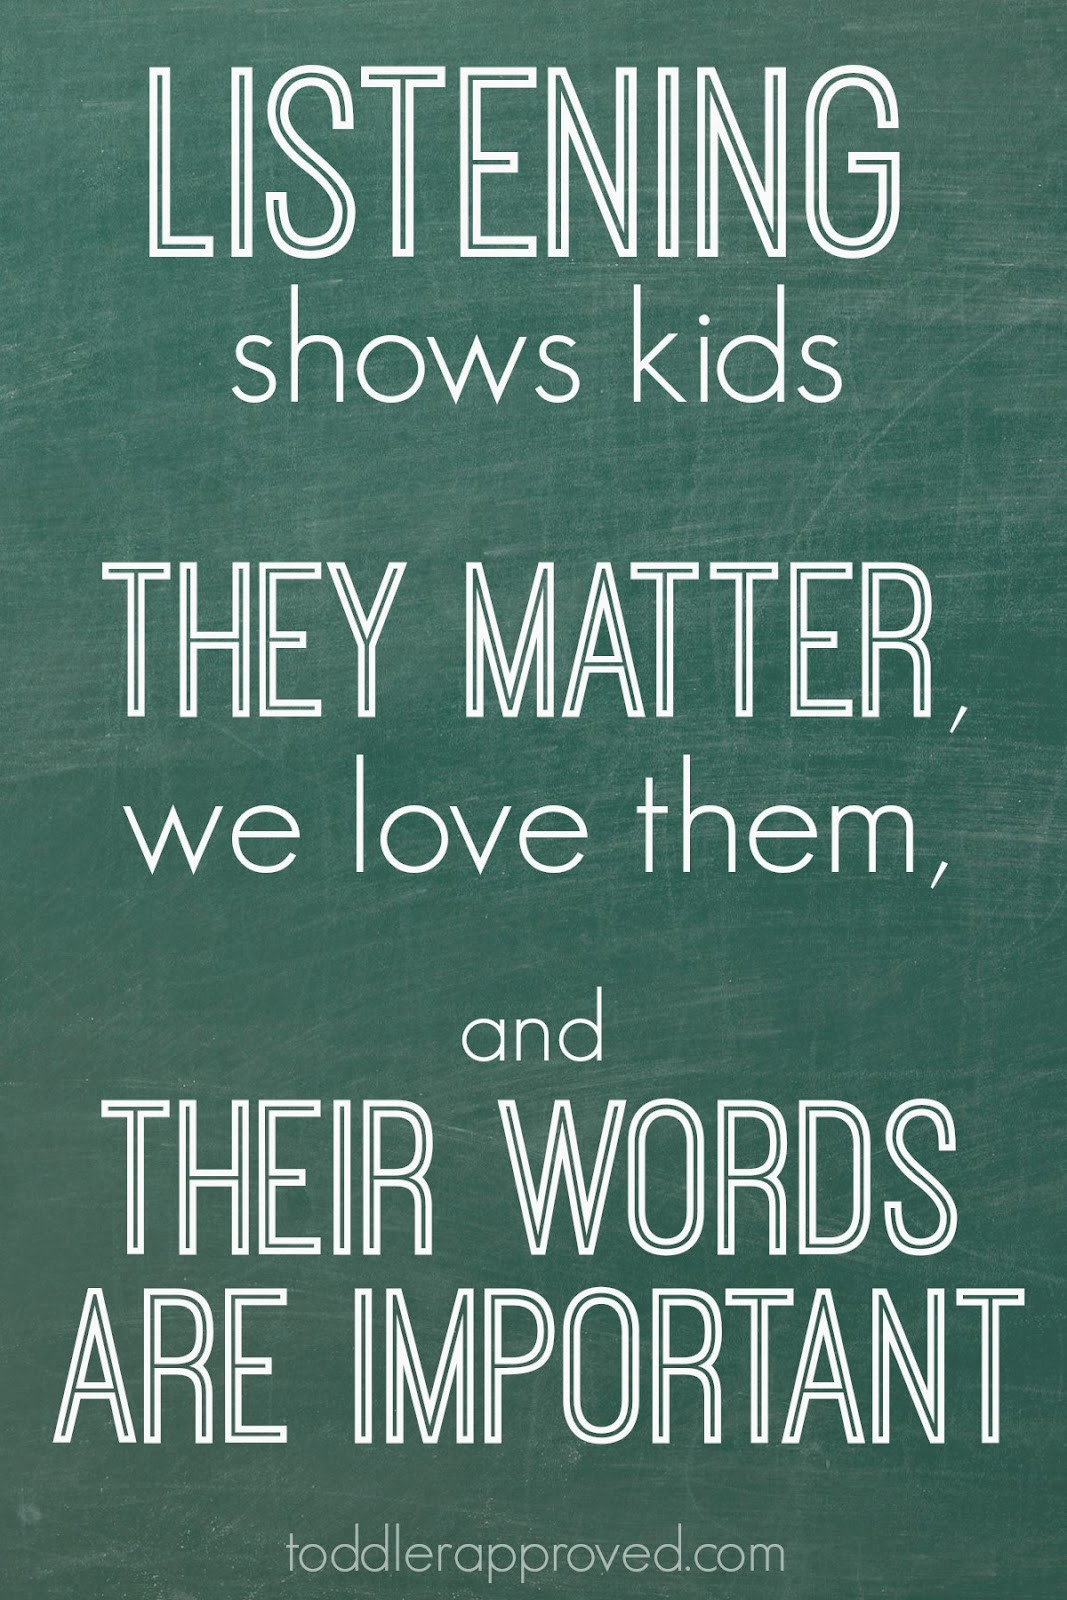 Quotes About Children  Toddler Approved Listening Better to Kids Parenting